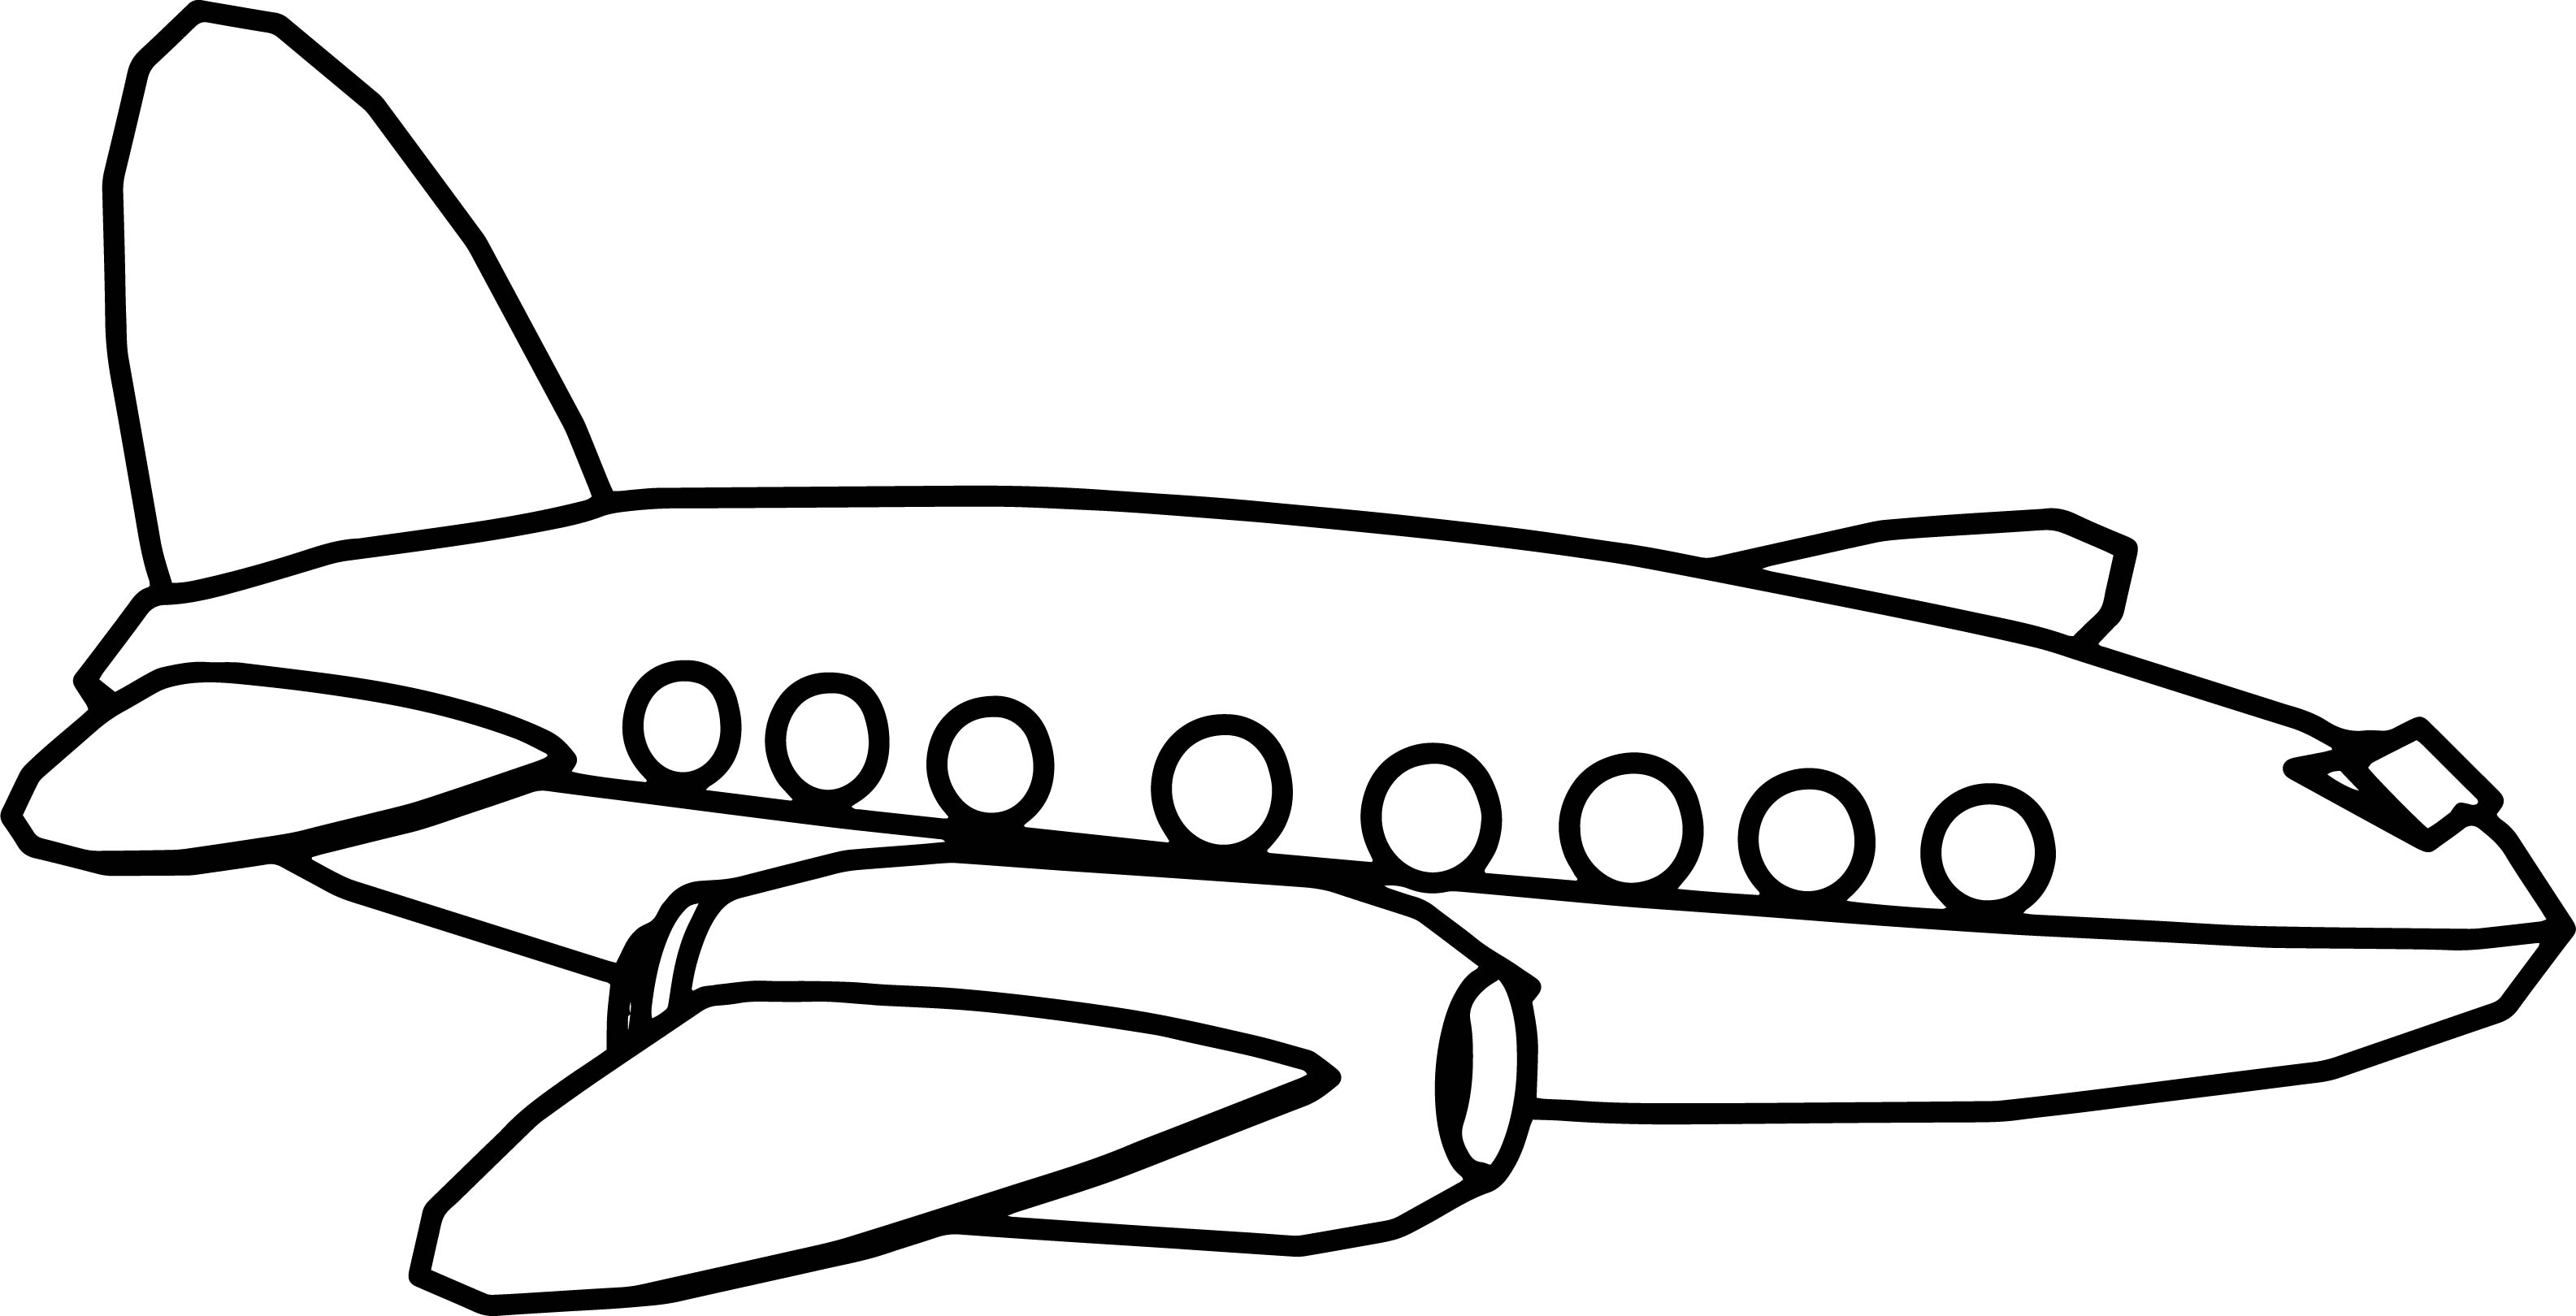 Side Cartoon Plane Coloring Page